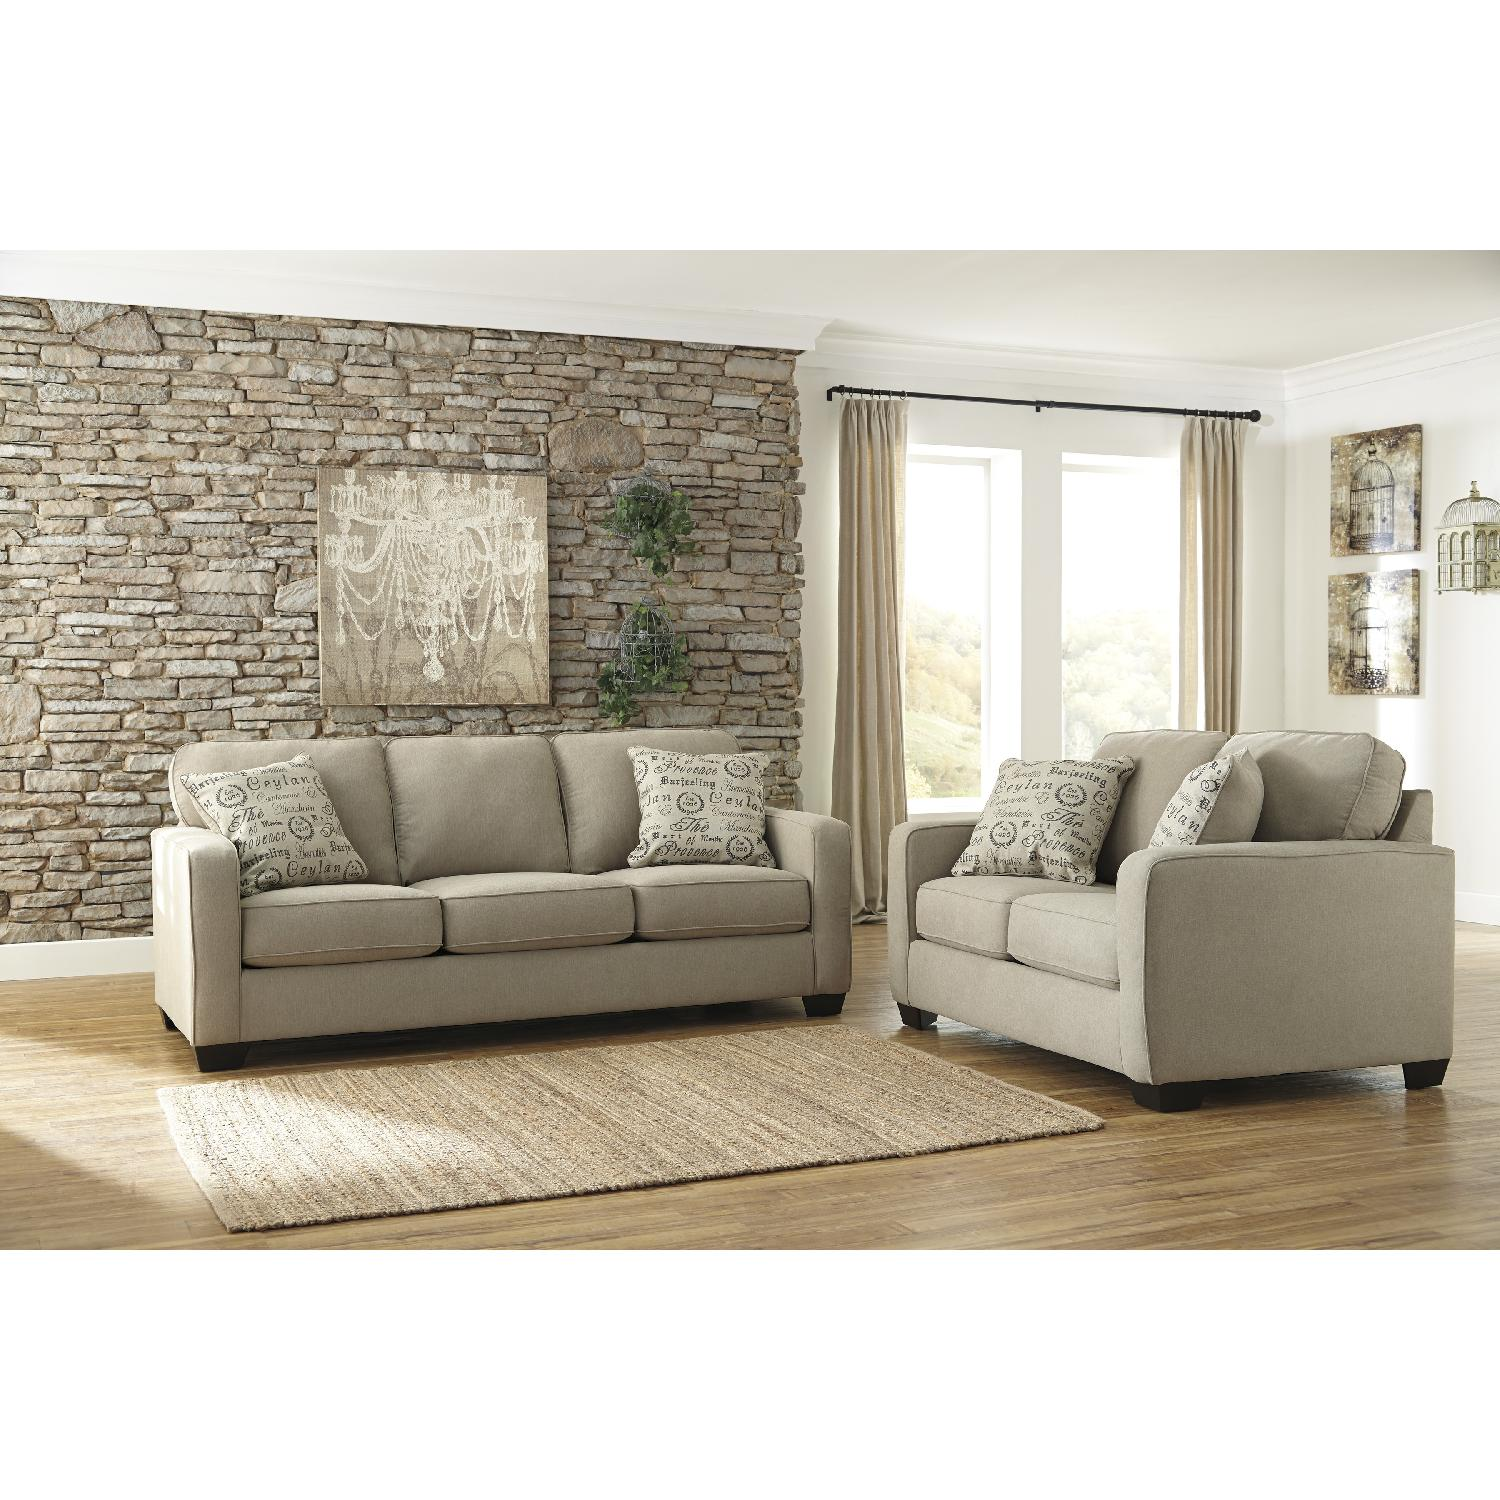 Cool Ashleys Alenya Contemporary Queen Sleeper Sofa In Quartz Ncnpc Chair Design For Home Ncnpcorg